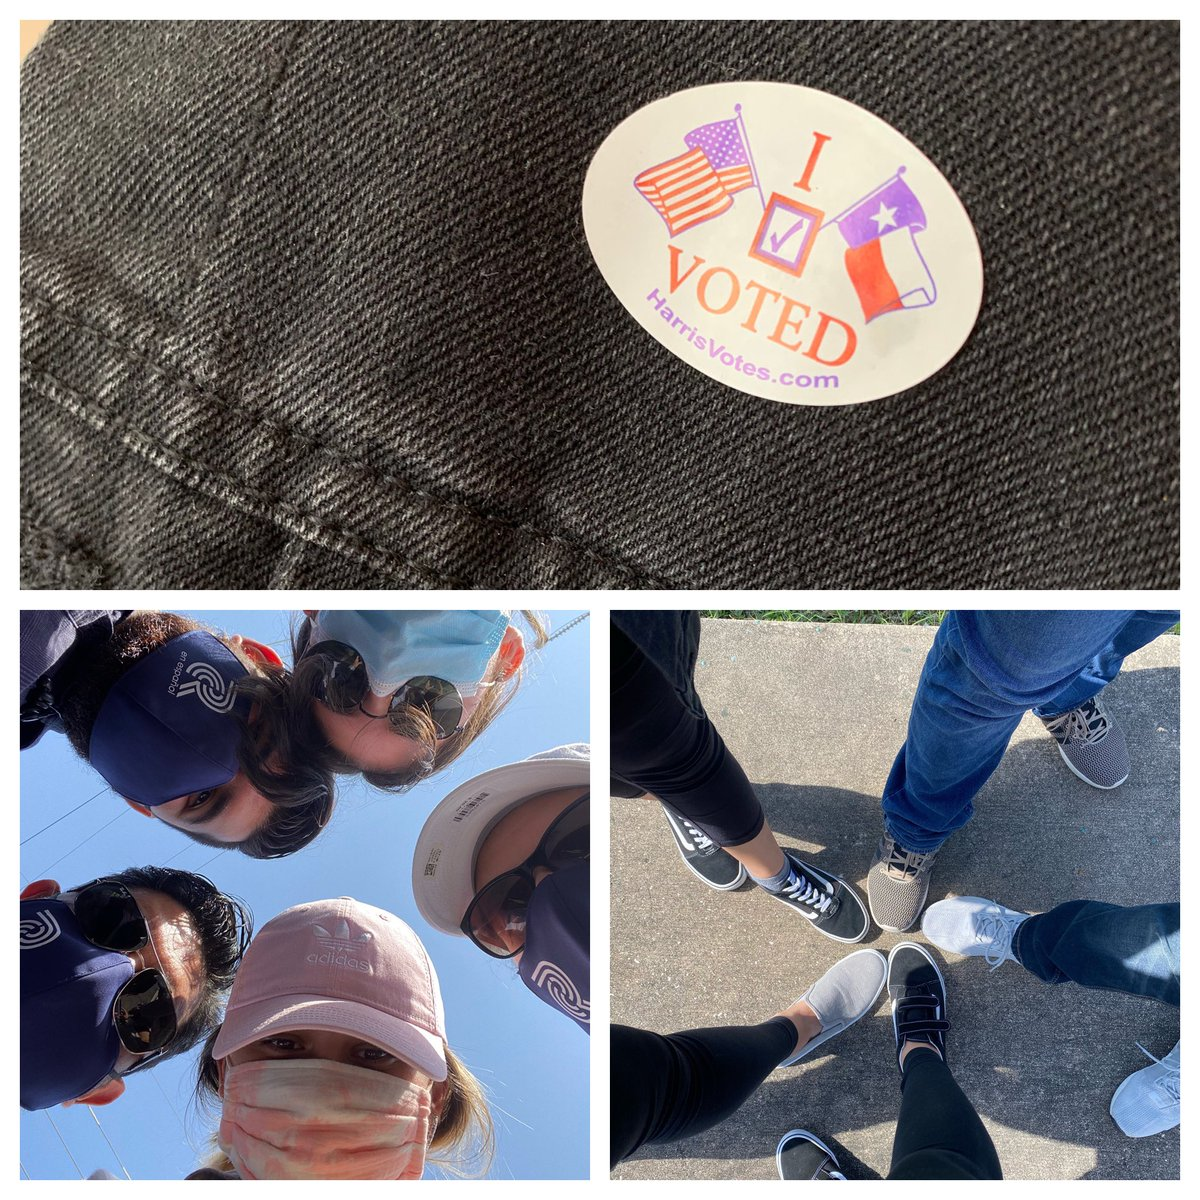 #EarlyVoting with our adult🧔🏻👩🏻👩🏻Today was our little' first time 🗳! @Carlos_Rodriguz  how is it possible that we're parents of three adults? @jessicadani3lle We love you three endlessly ❤️ #EarlyVoting #Voting  #CivicDuty #Wevoted #VOTE #earlyvotingtexas 🙏🏻🇺🇸❤️🗳 https://t.co/nicEVtV12k